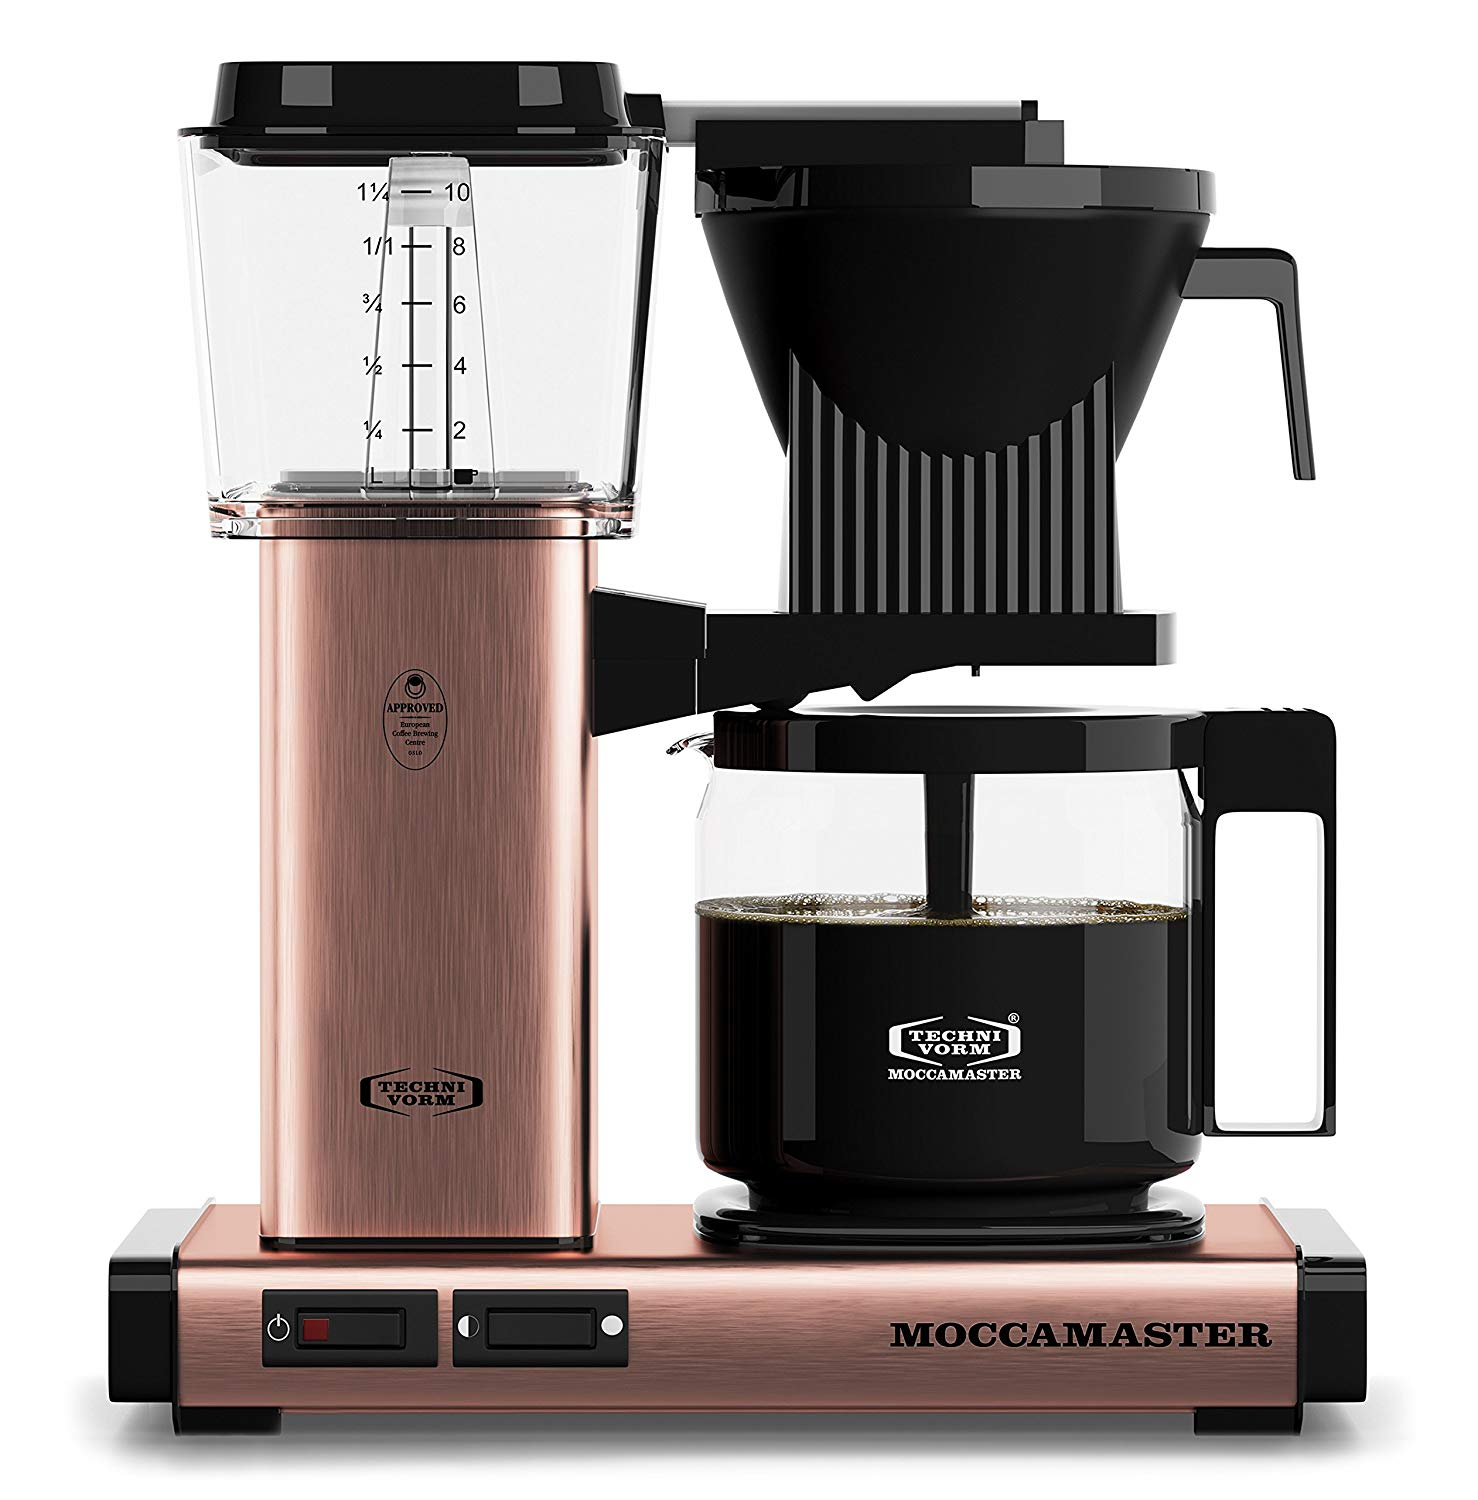 Gifts for Coffee Lovers: Moccamaster Coffee Brewer